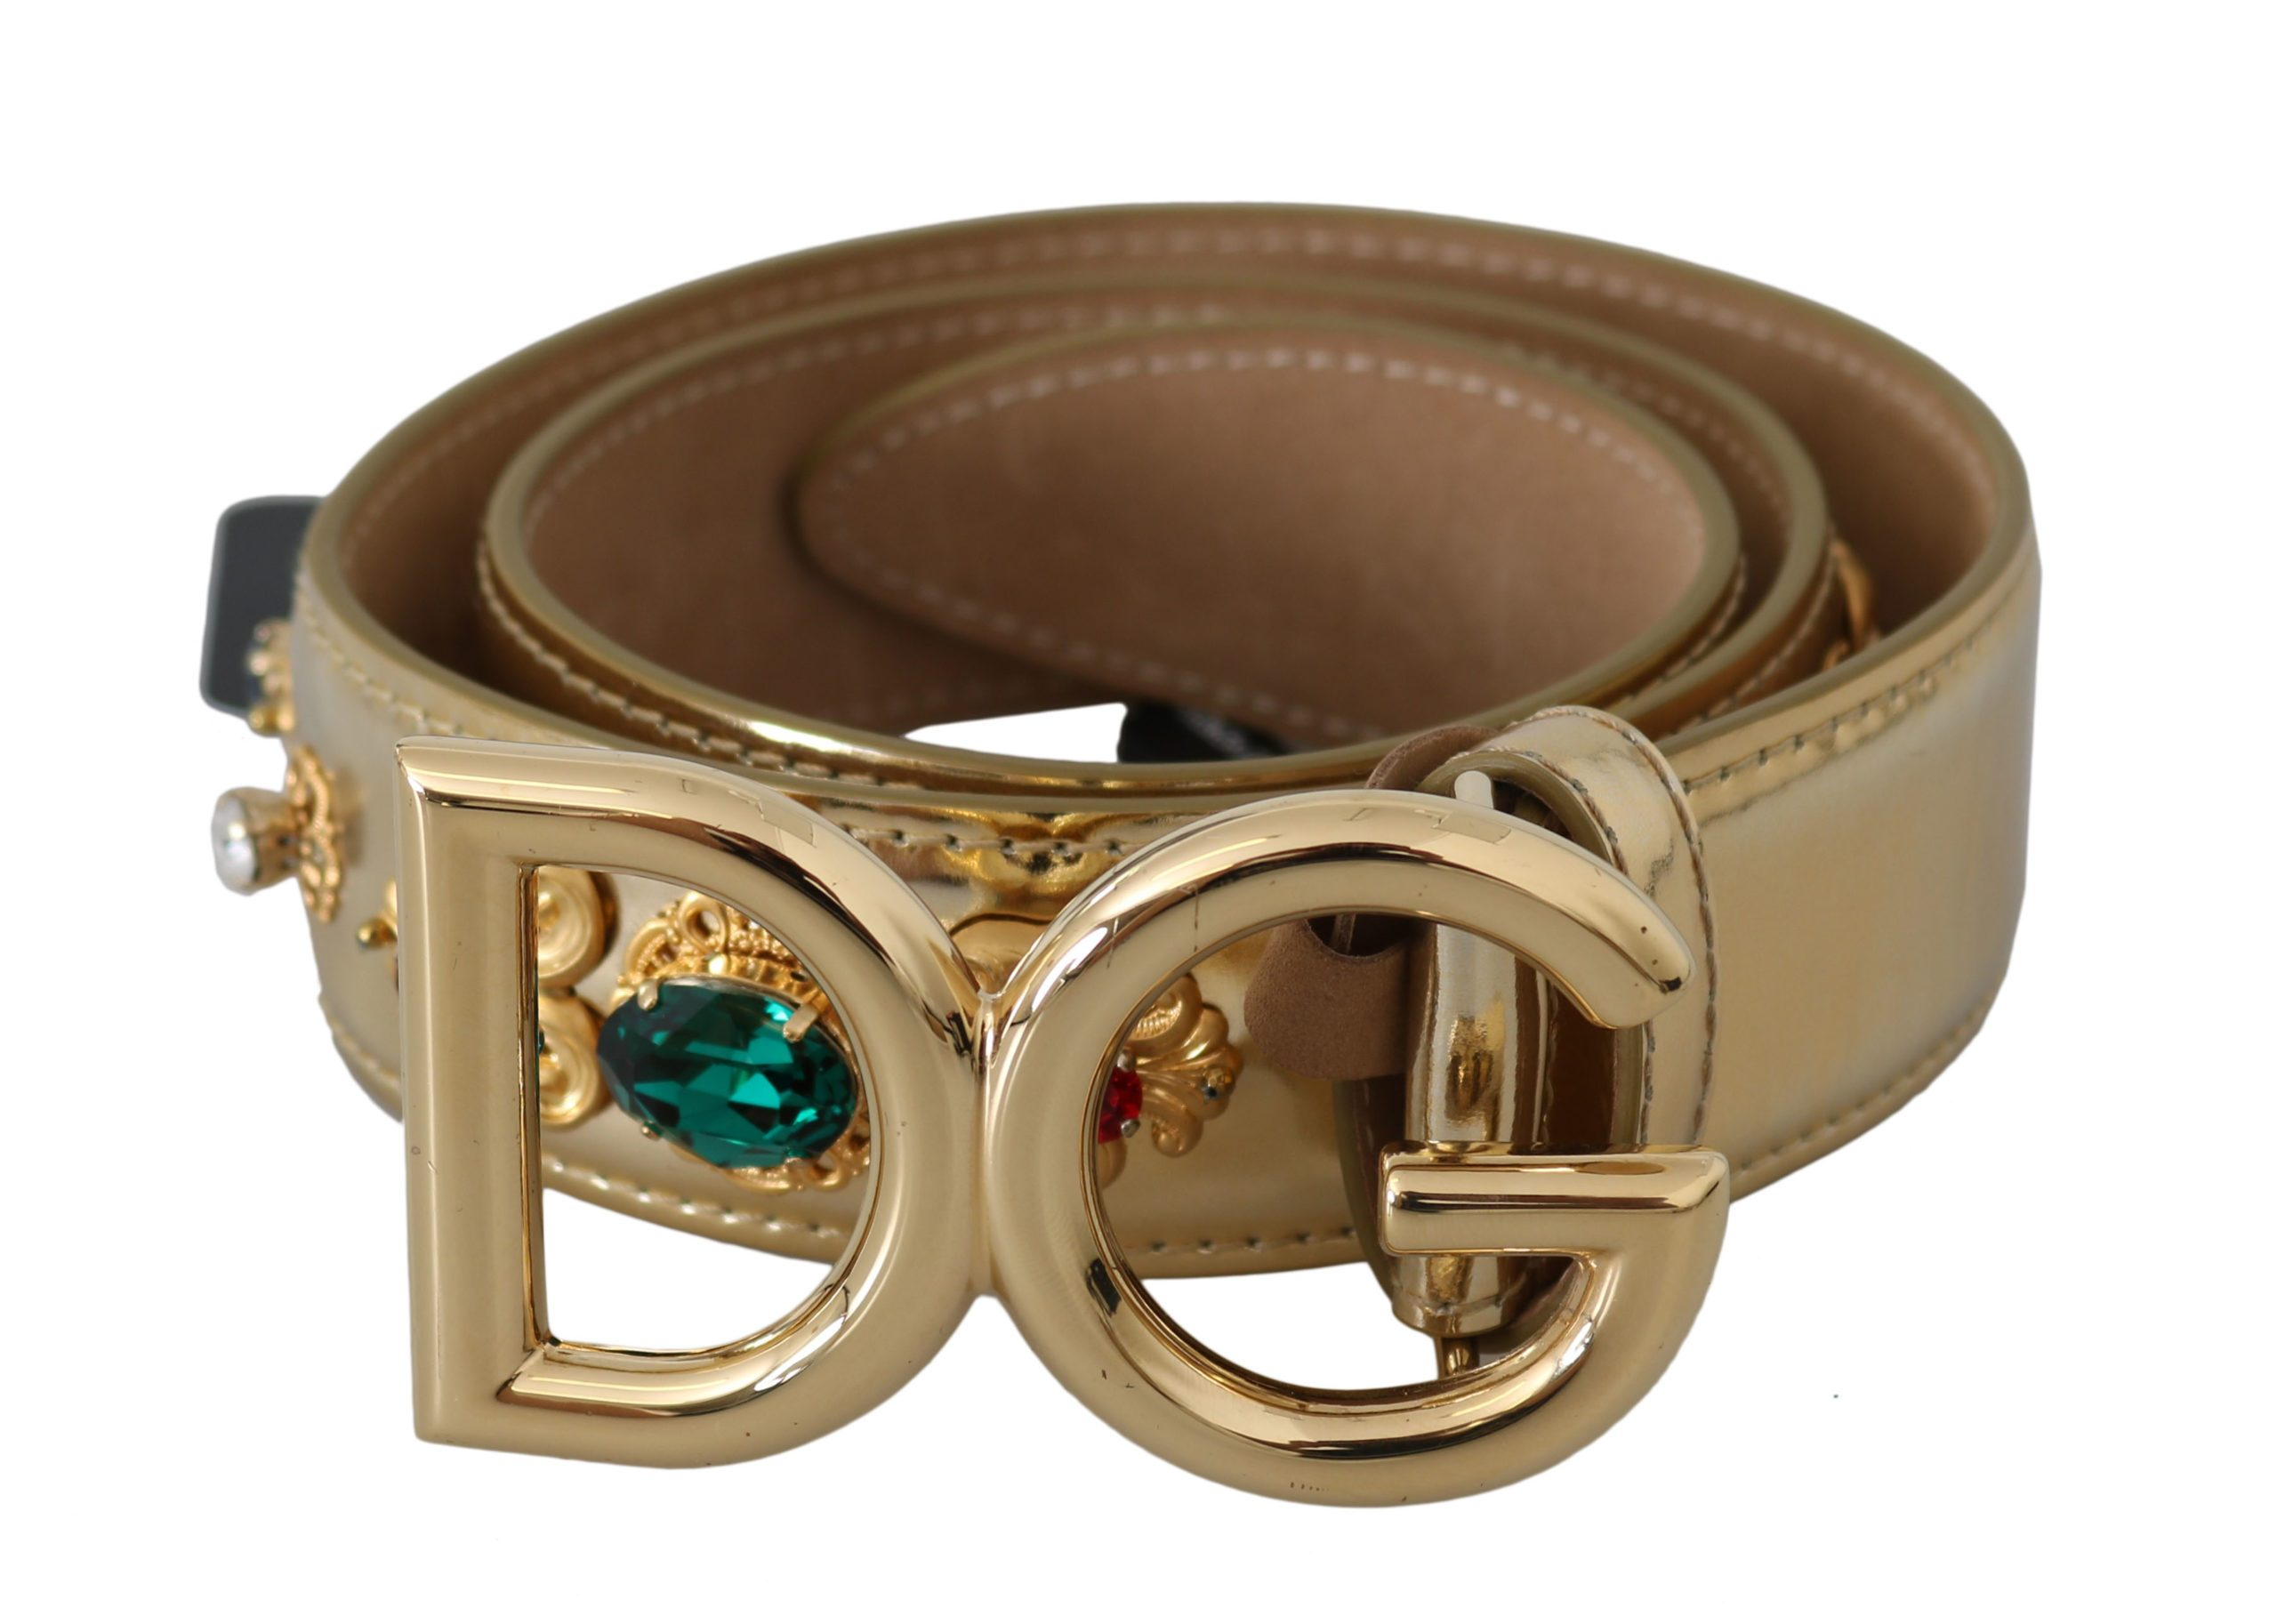 Dolce & Gabbana Women's Leather Buckle Crystal Belt Gold BEL60722 - 90 cm / 36 Inches